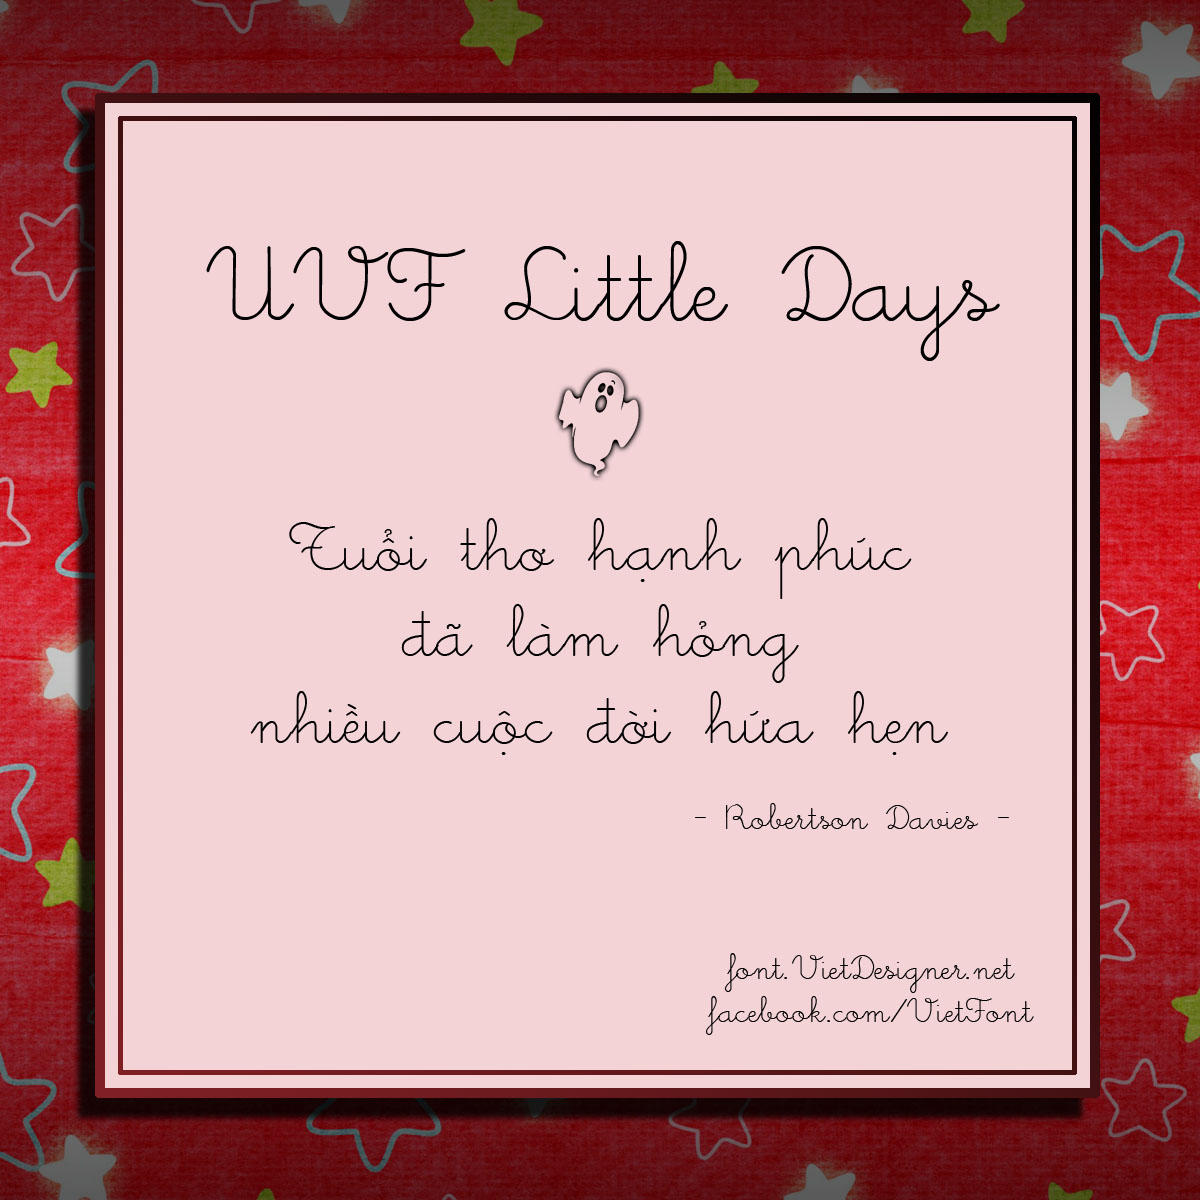 Font: UVF Little Days